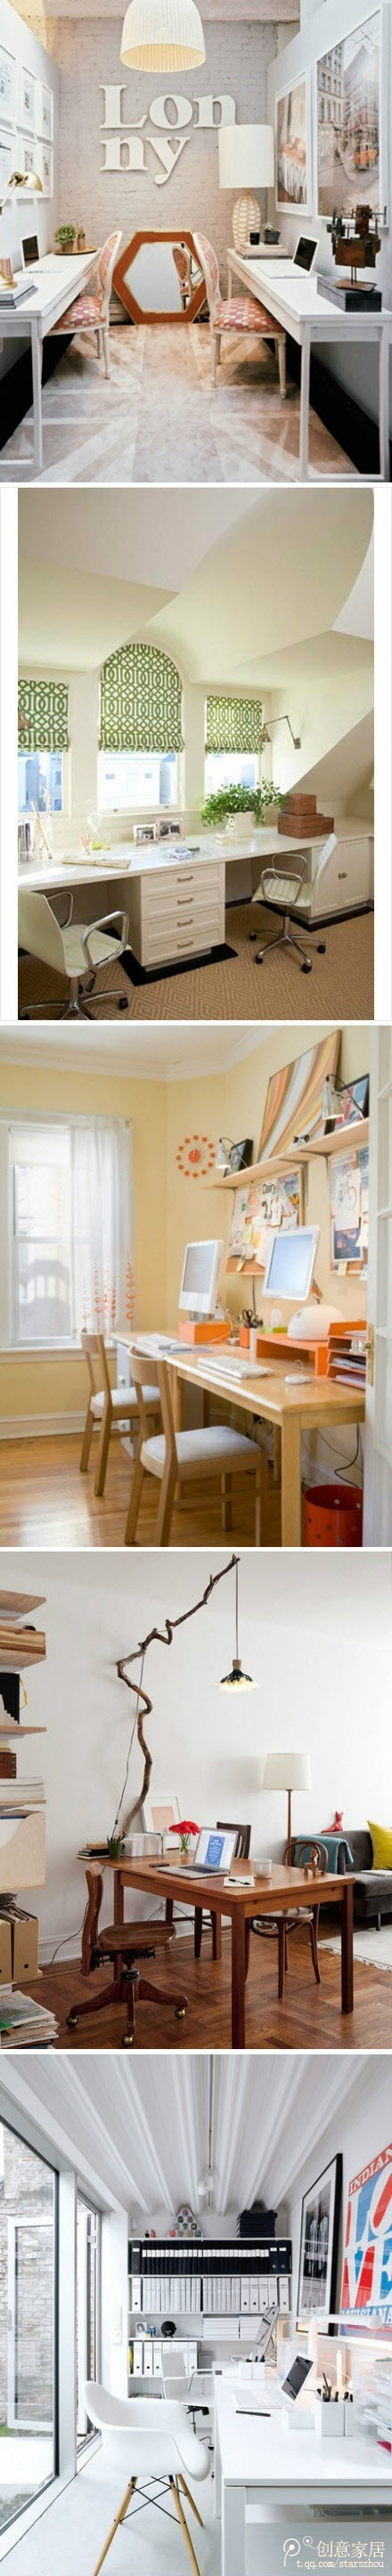 Office for two, which one is for you?